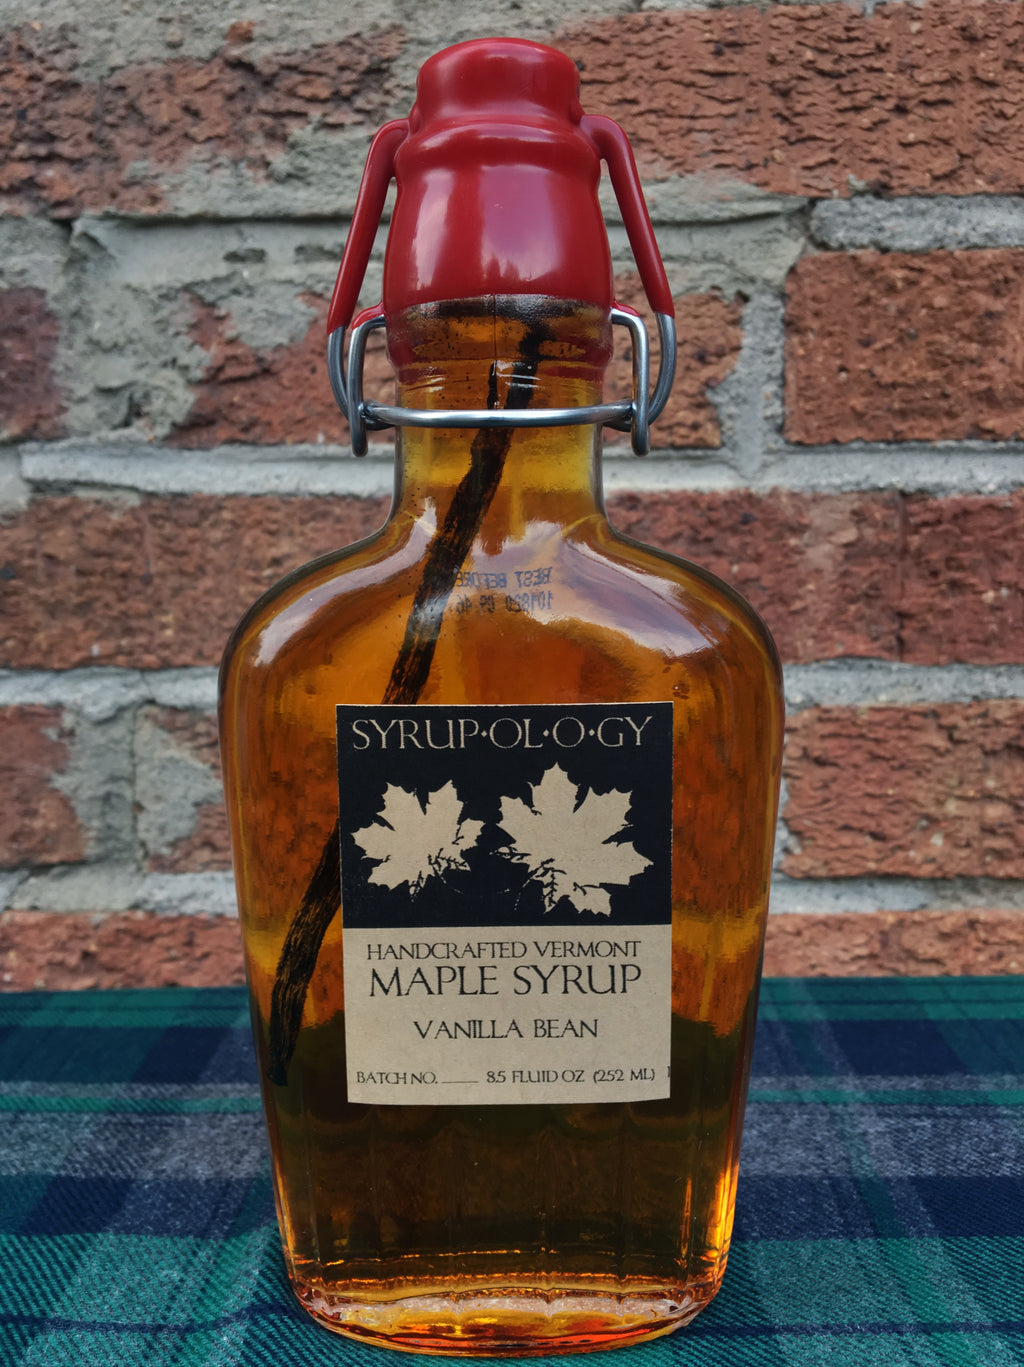 Vanilla Infused Grade A Maple Syrup